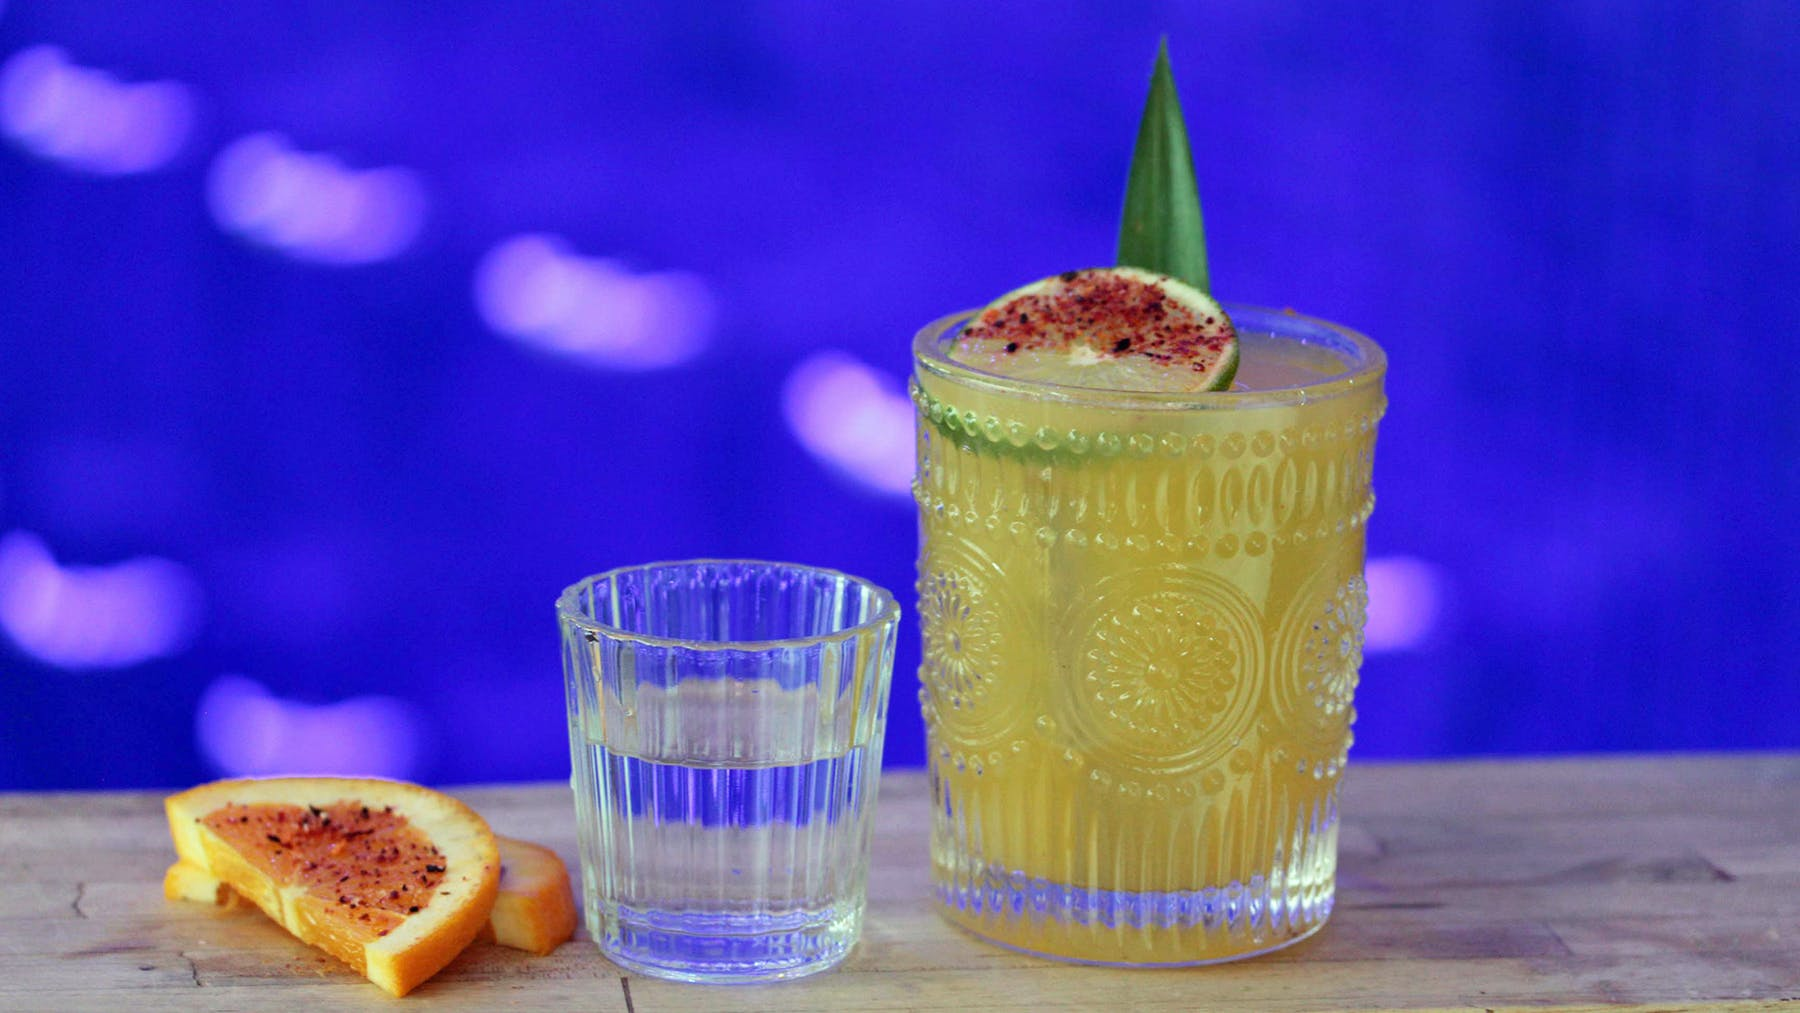 a glass of Margarita, small glass of mezcal and orange slices